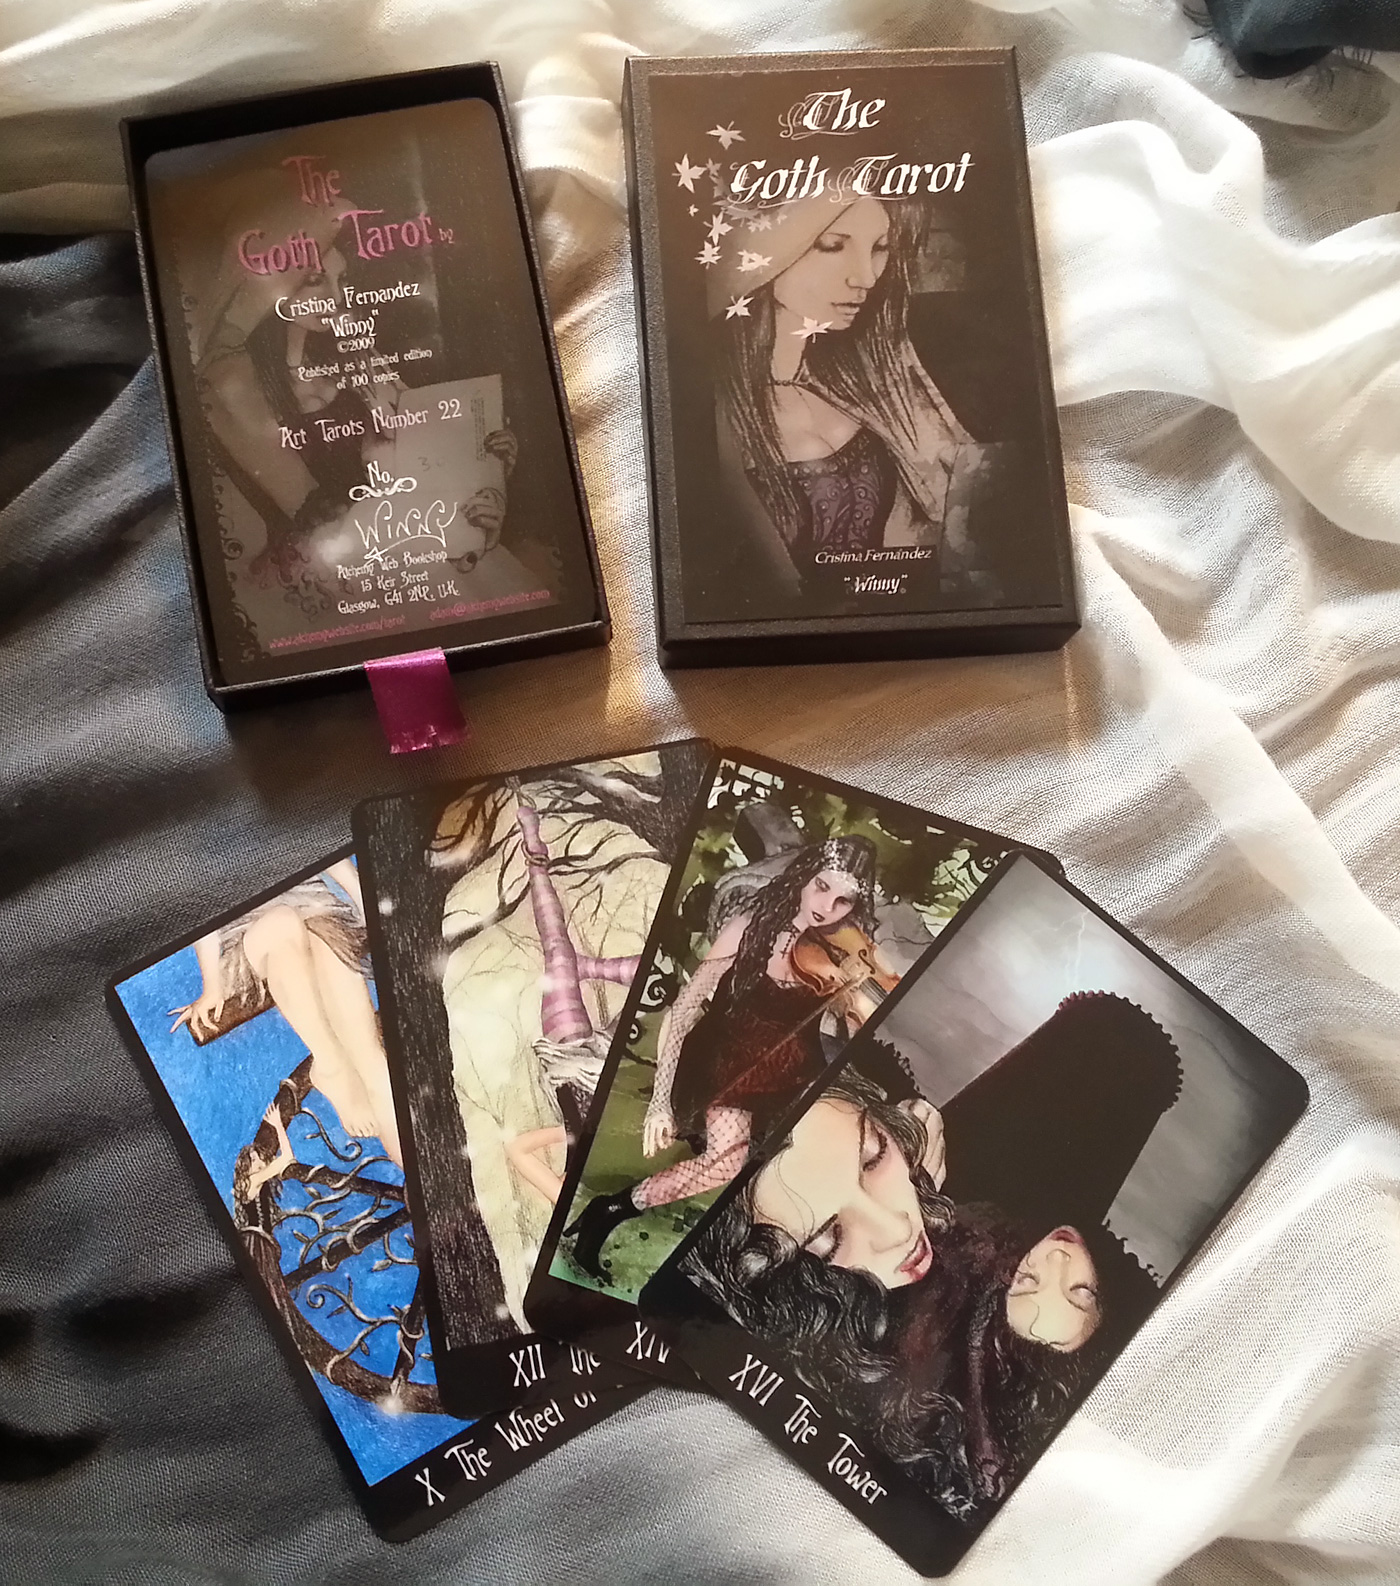 The Winny Limited Edition Goth Tarot